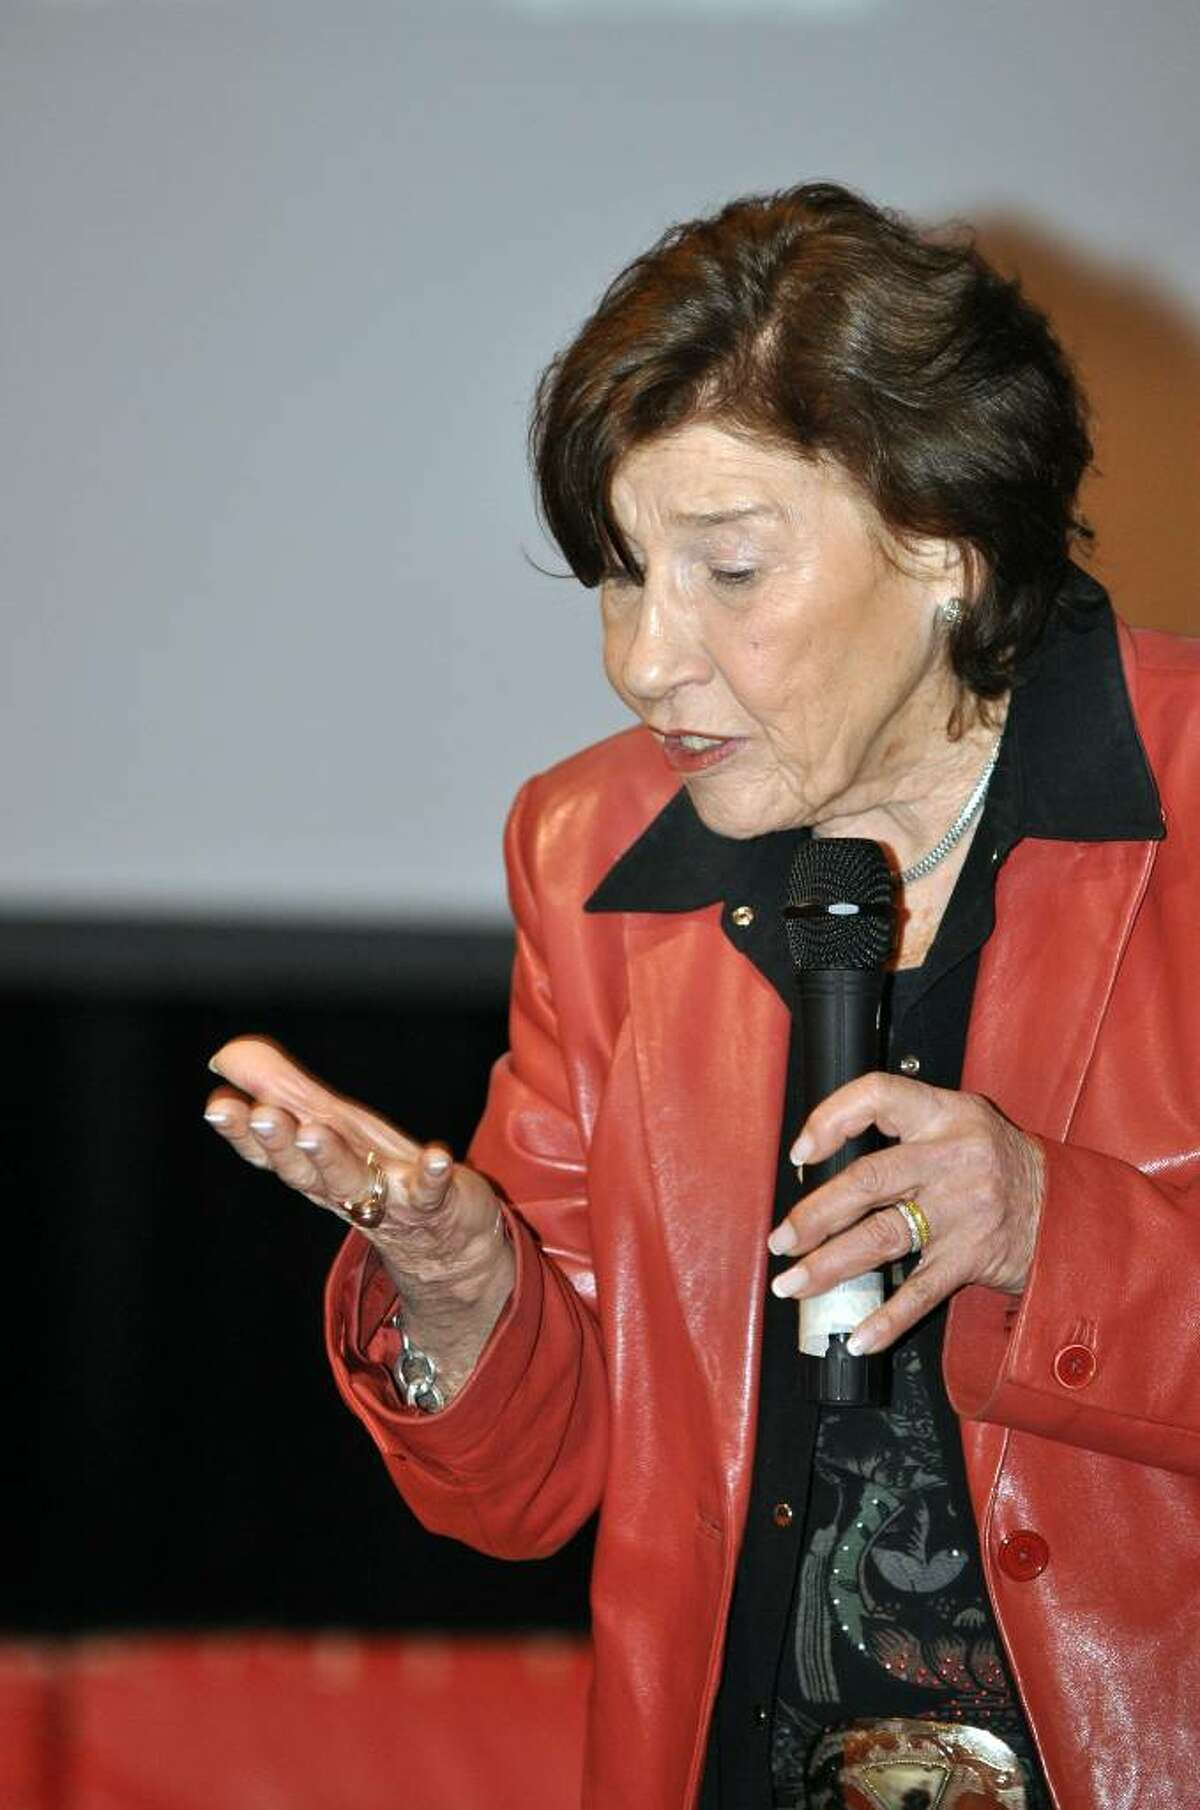 Holocaust survivor, Anita Schorr, recalls the day her family arrived at the concentration camp by way of cattle cars and were then divided into two groups. Schorr's mother, Stella, fearful that they would be separated, gripped Schorr's hand so tightly that bloody fingernail marks were left on the palm of her hand.